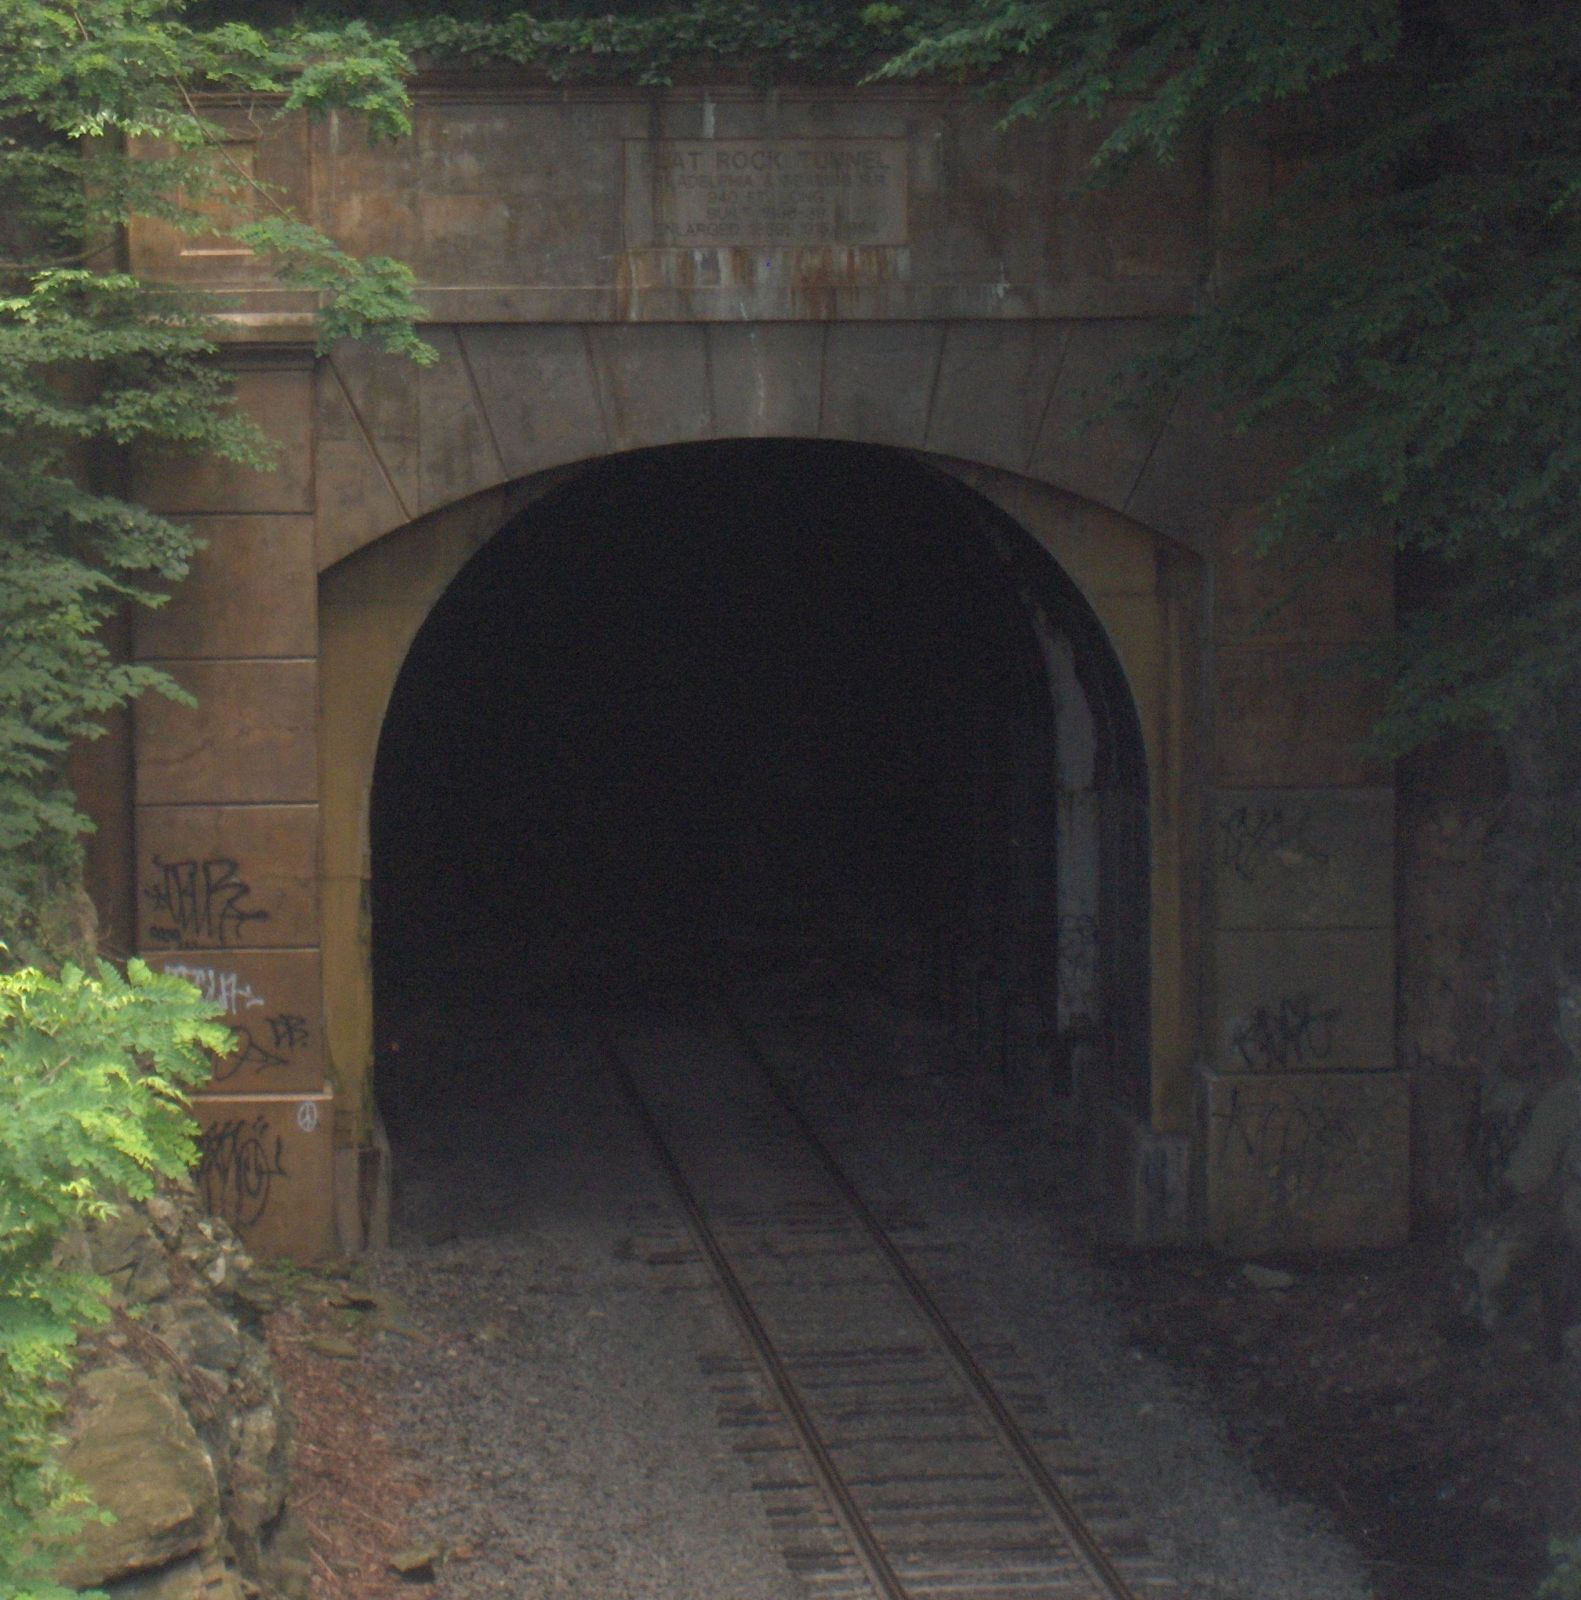 North Norfolk Stories: NS - Flat Rock Tunnel